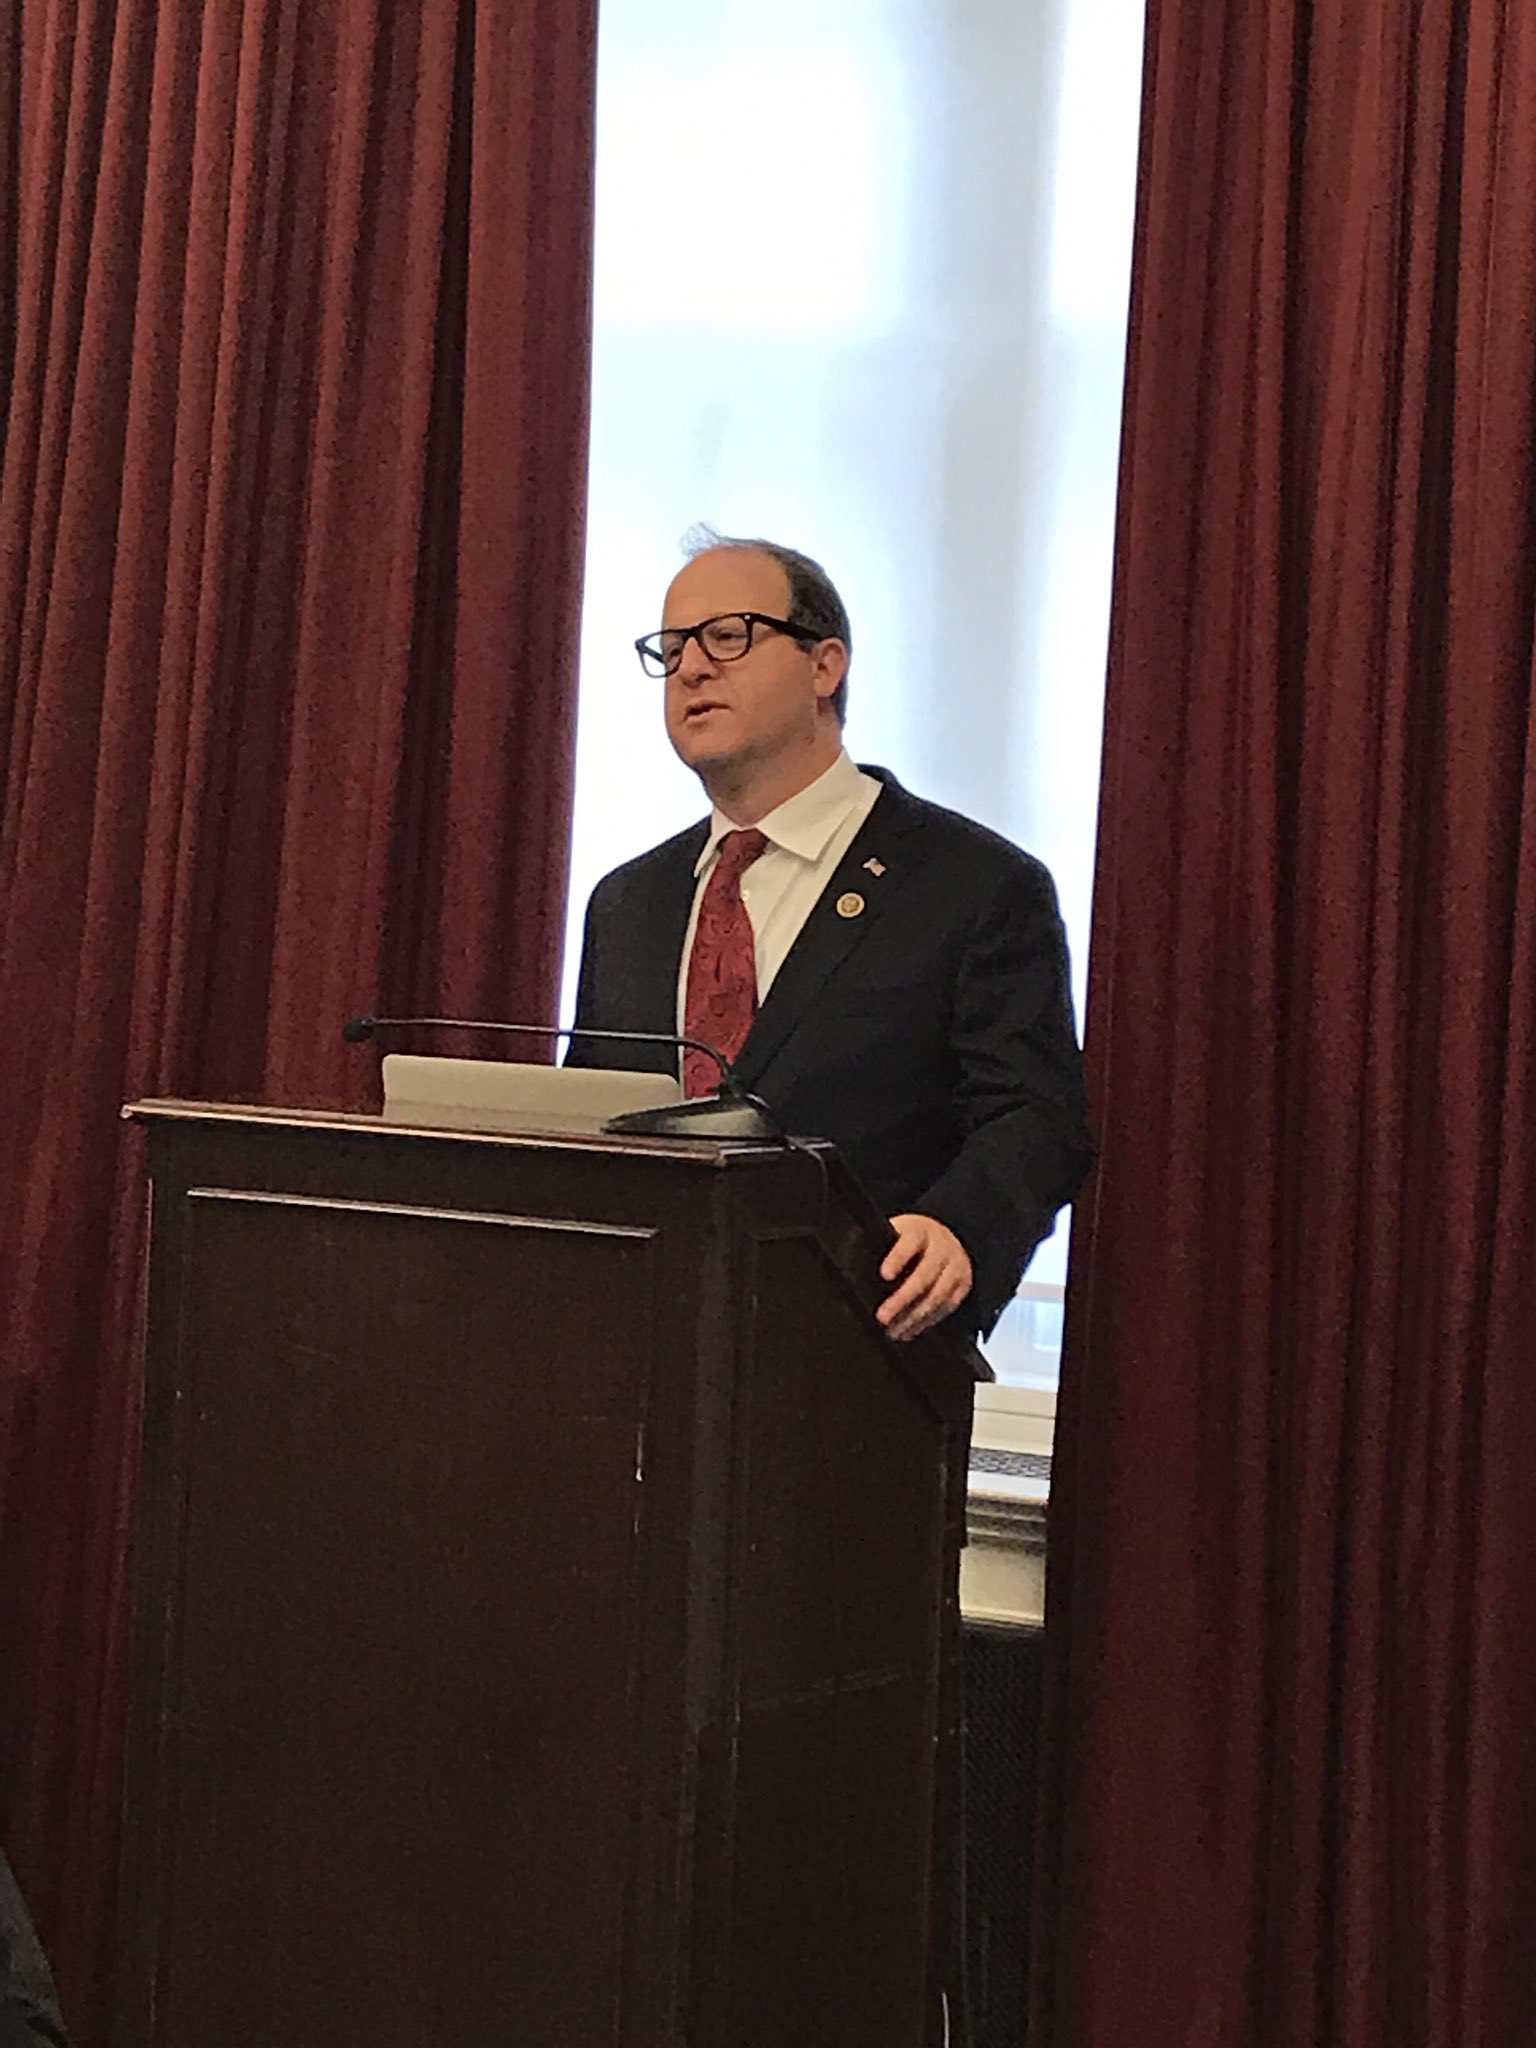 @RepJaredPolis, co-chair of the House Earth and Space Science Caucus speaking at #earthandspace101 https://t.co/iYKRWiyvZb